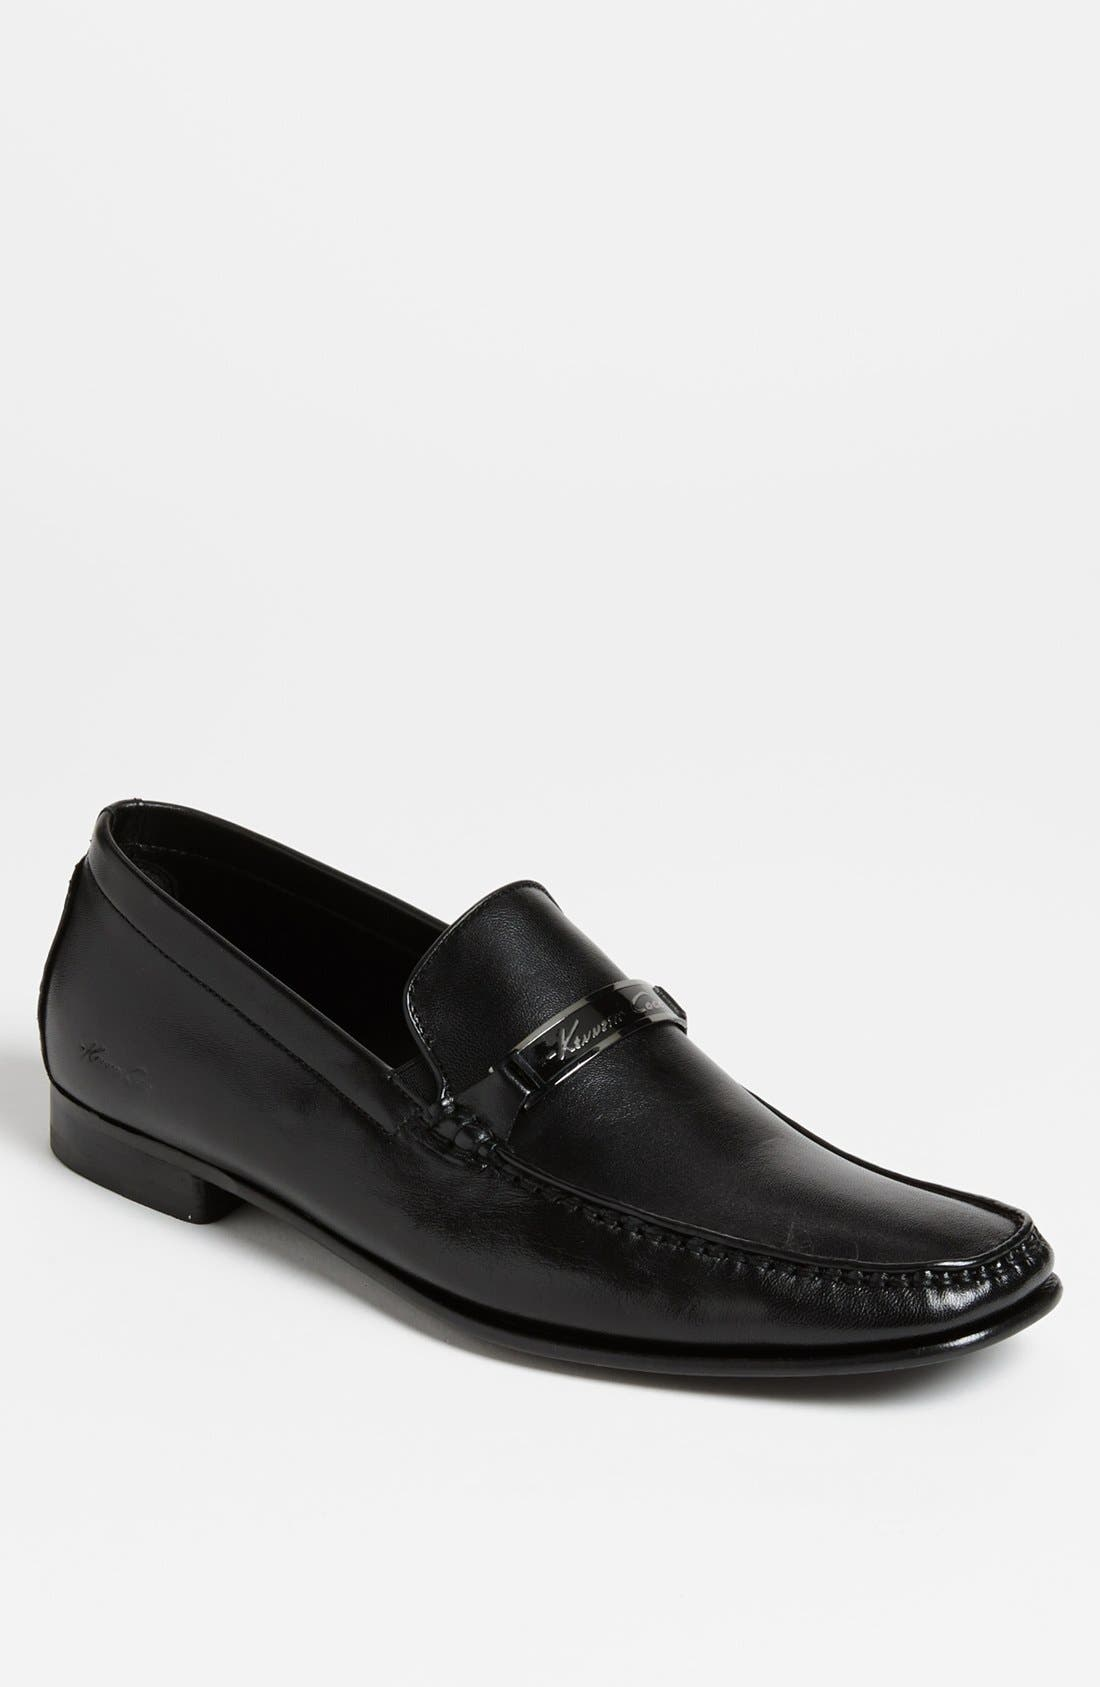 Alternate Image 1 Selected - Kenneth Cole New York 'Bologna' Loafer